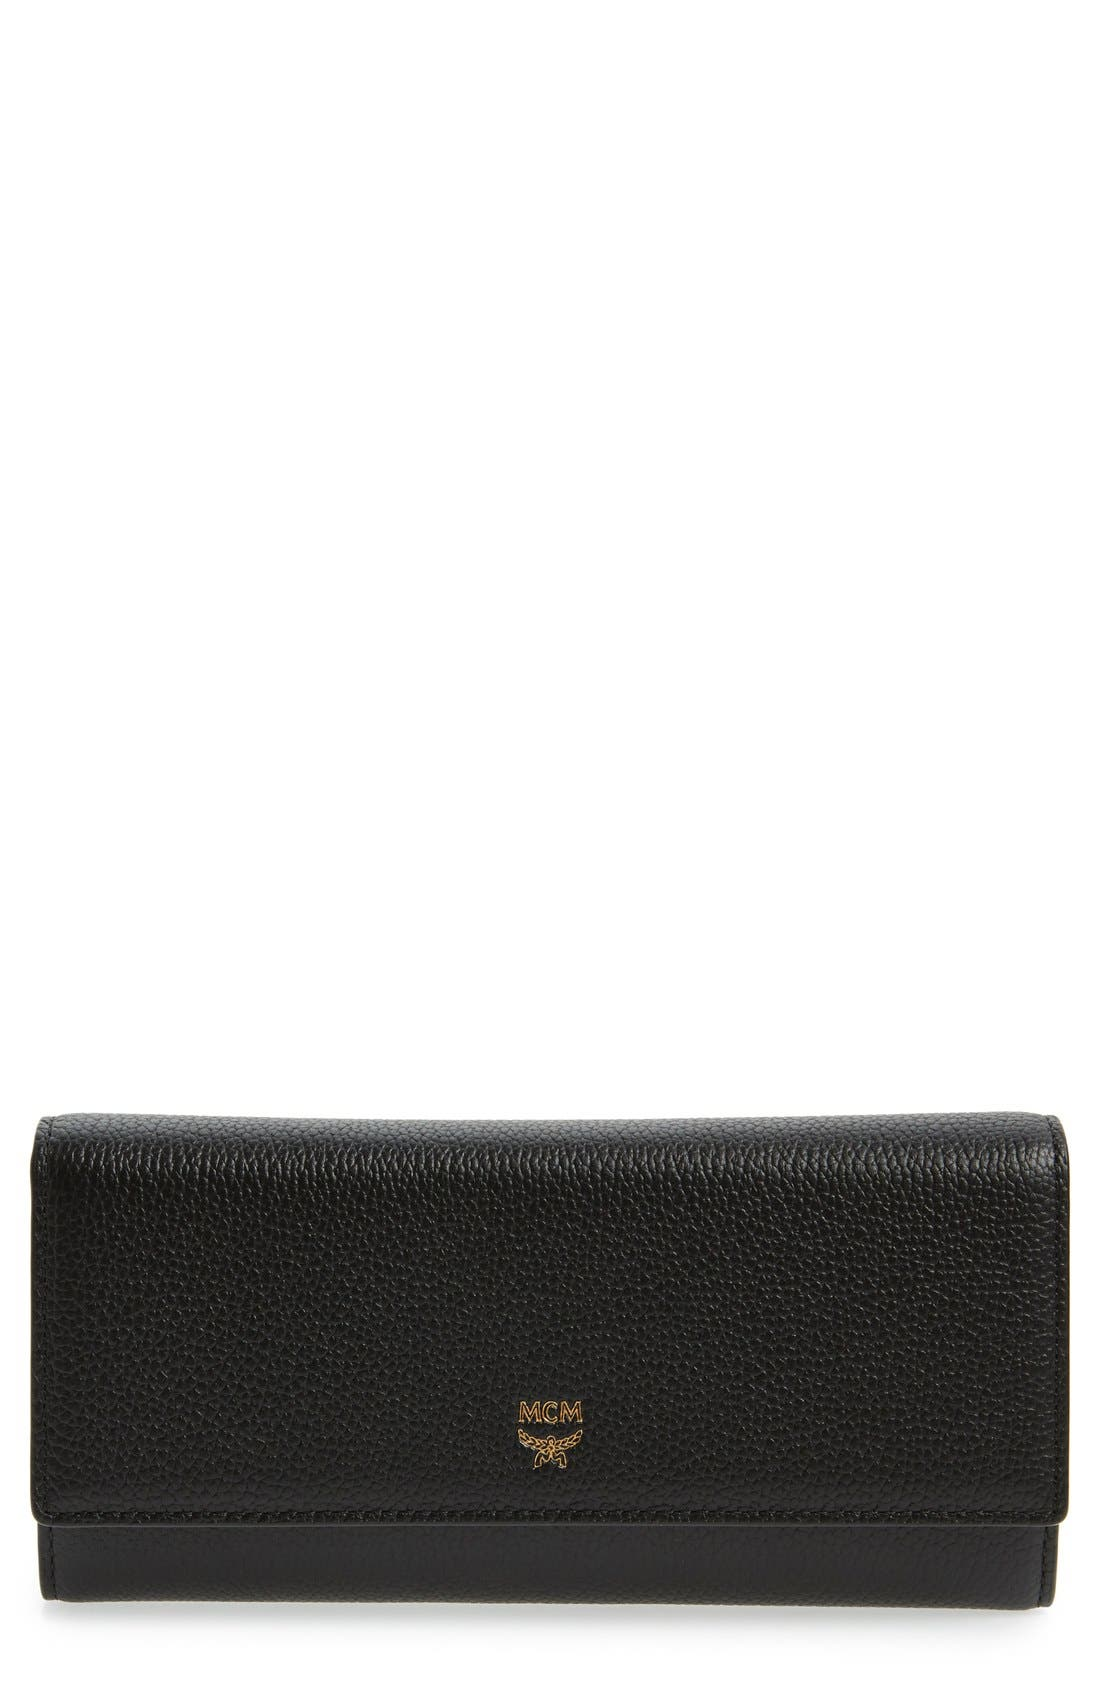 MCM Milla Leather Continental Wallet